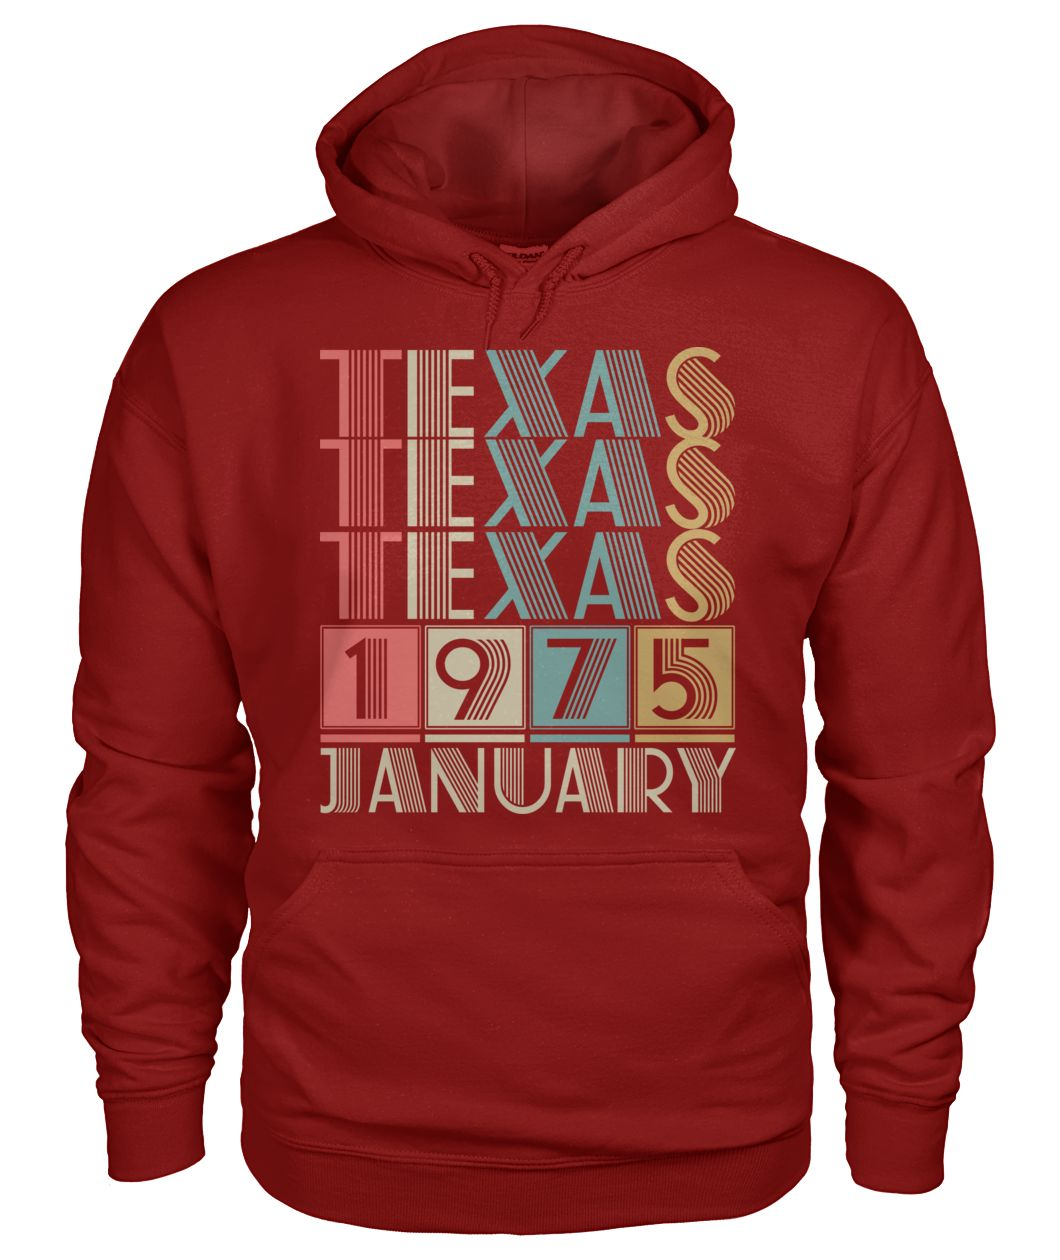 Born in Texas in January 1975 t shirt-Short Sleeves - TEEHOT.COM